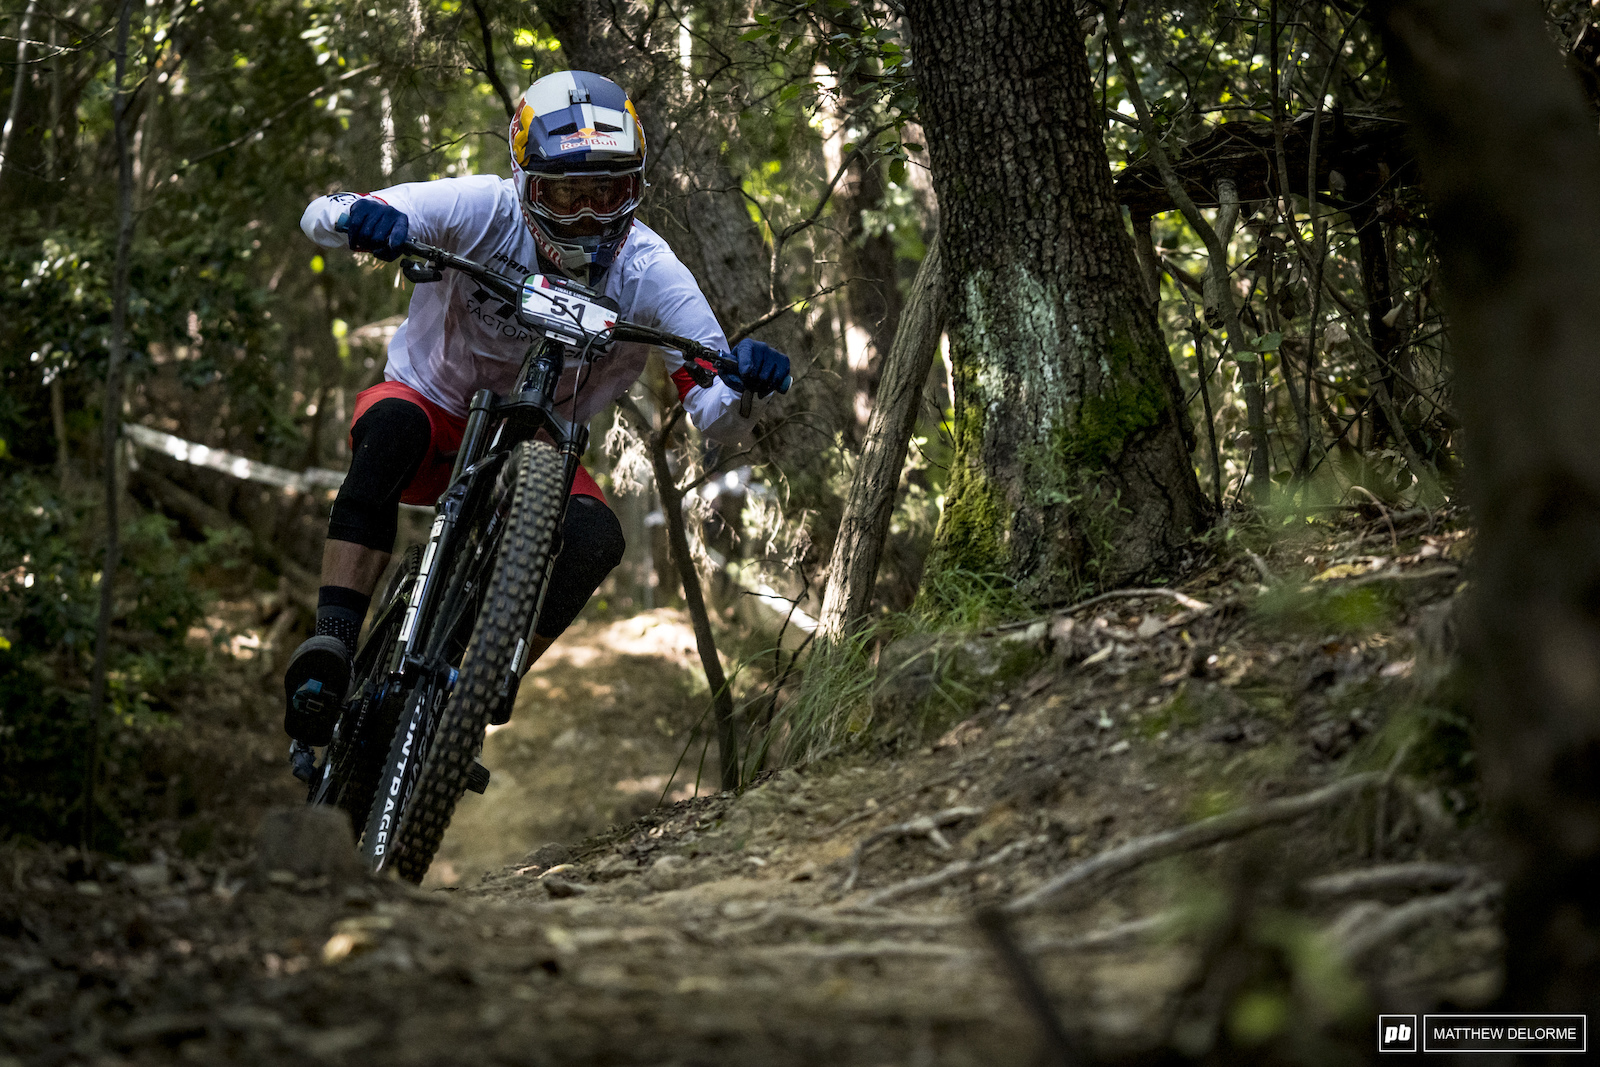 Pedro Burns was having a solid day and finished stage 2 in 11t place but clipped a pedal and went over the bars. Burns finished 22nd.